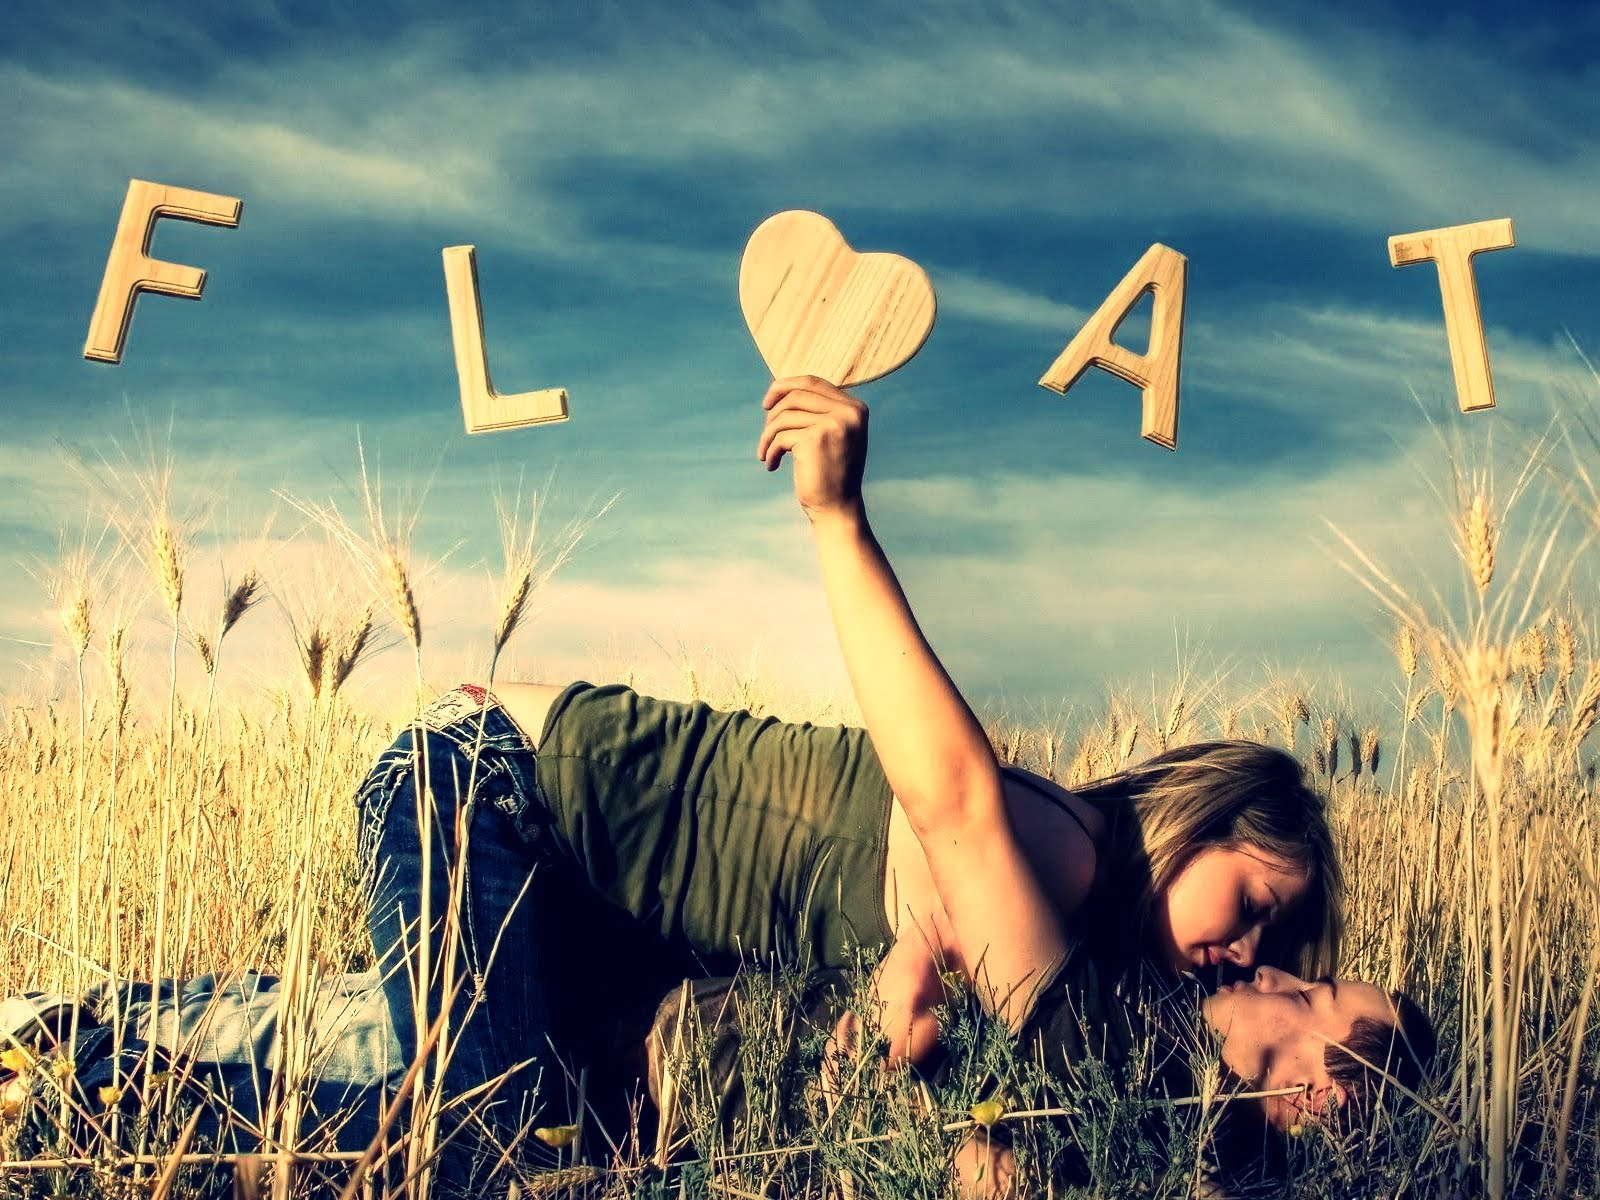 Love Wallpaper Boyfriend Girlfriend : Best HD Wallpapers, New Wallpapers, Pc Wallpapers, Mobile Wallpapers: July 2011